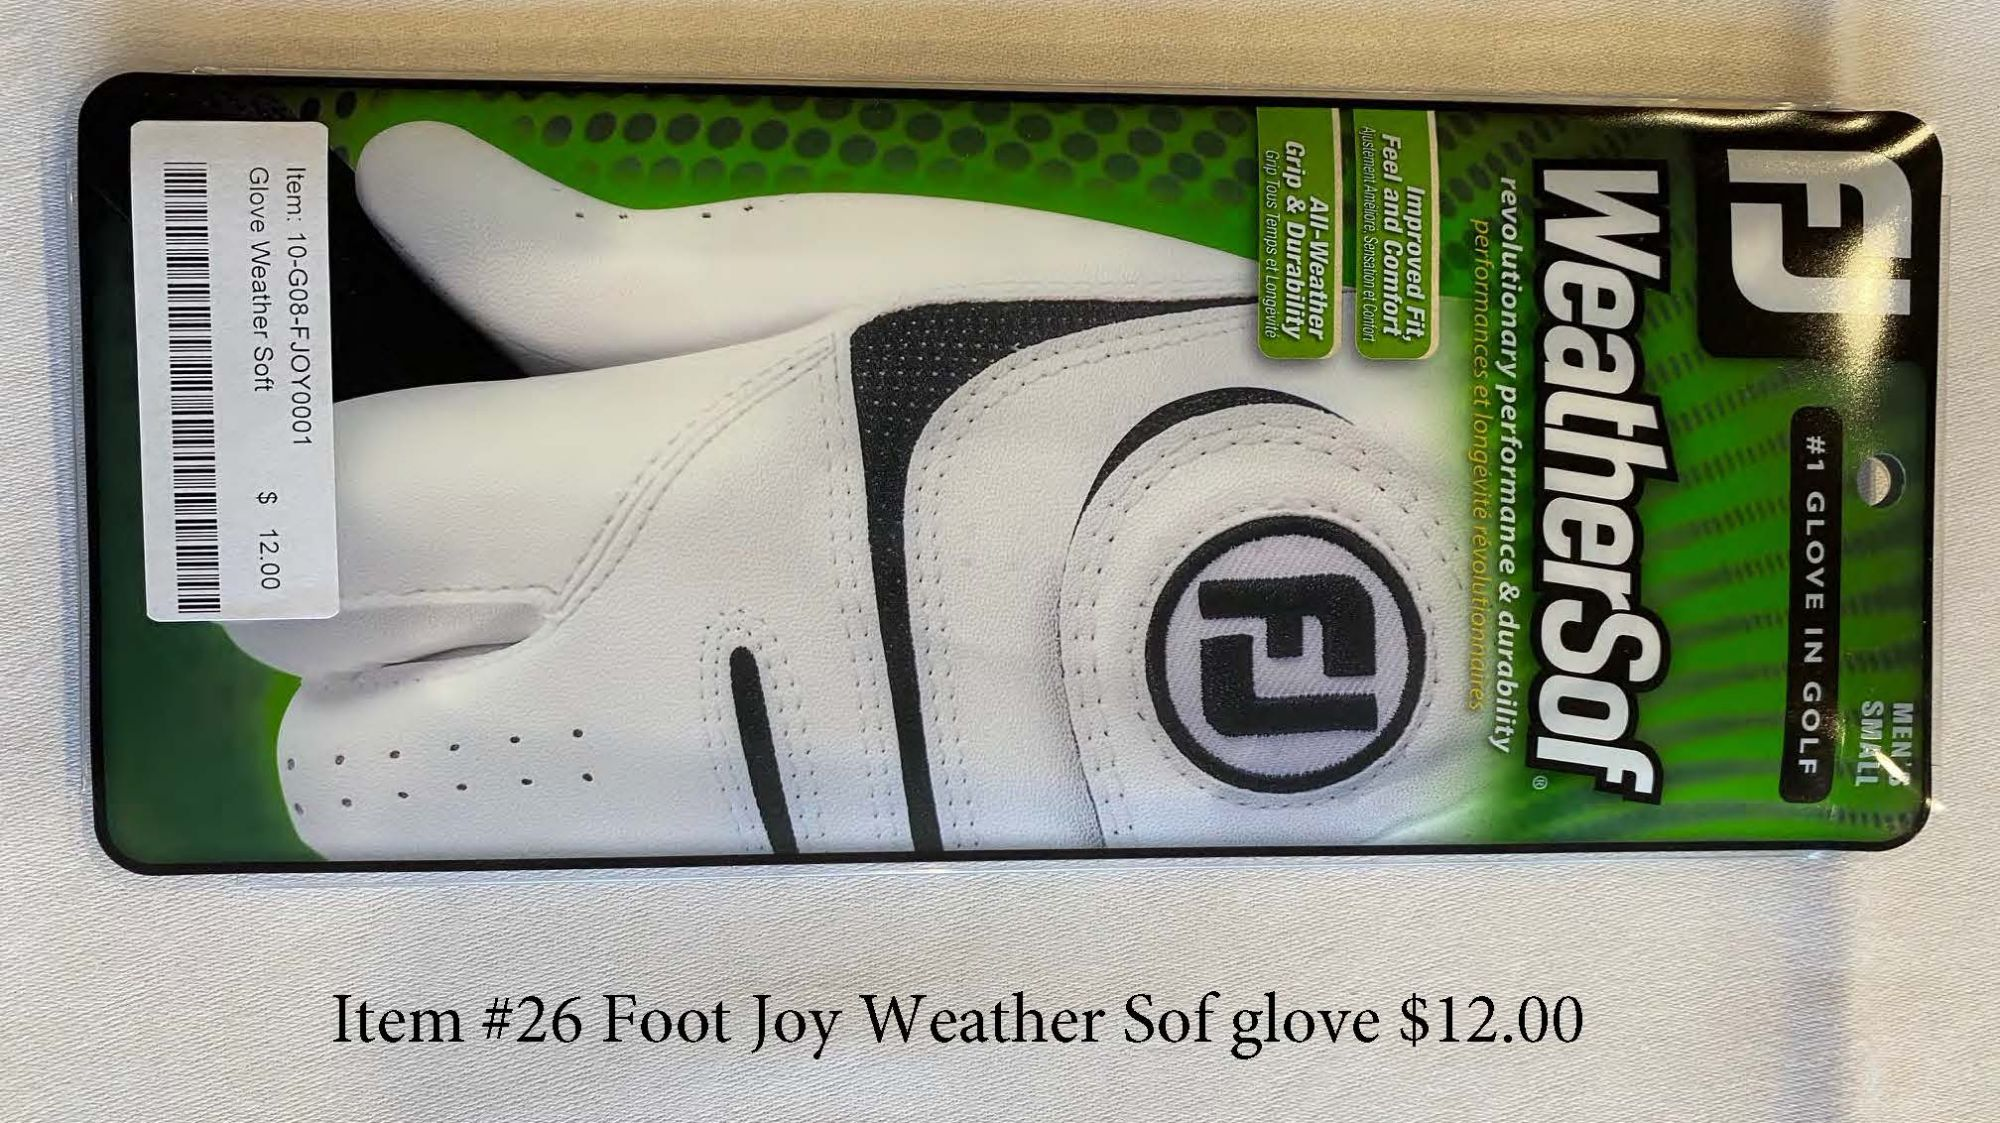 Item_26_Foot_Joy_Weathersof_glove_12.00.jpg